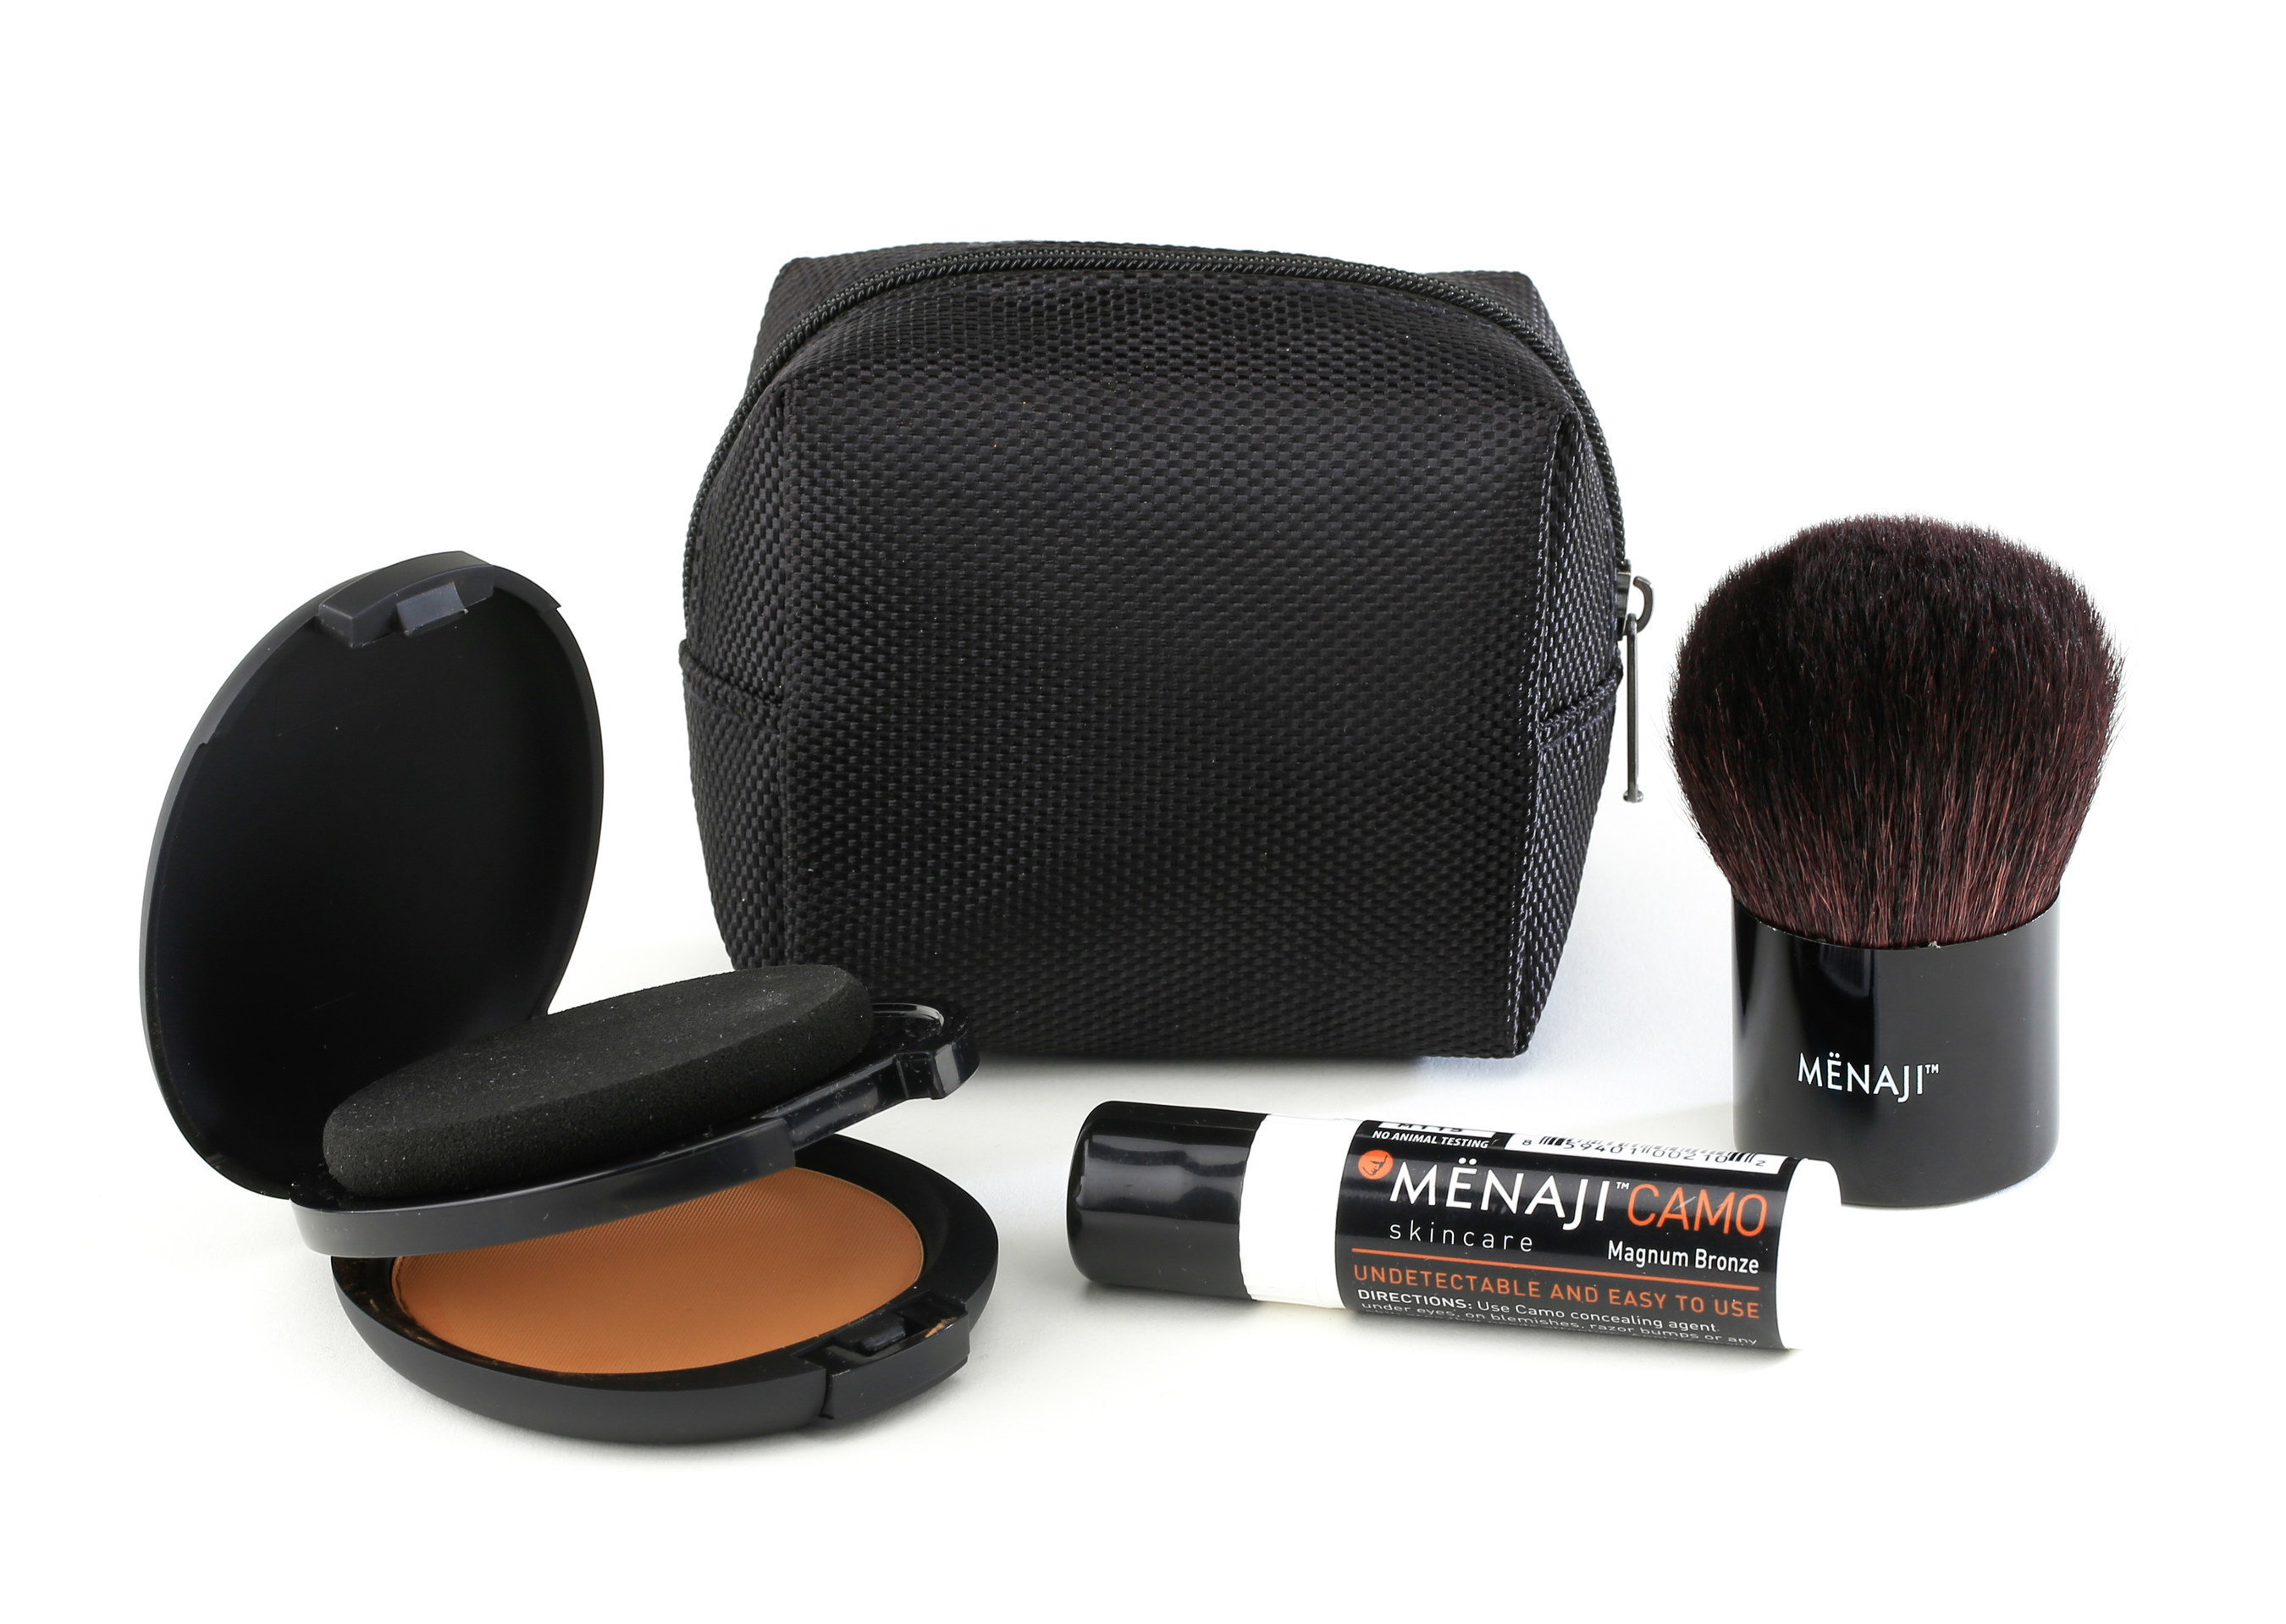 MENAJI Launches The Gregory Beauty Travel Kit for Men